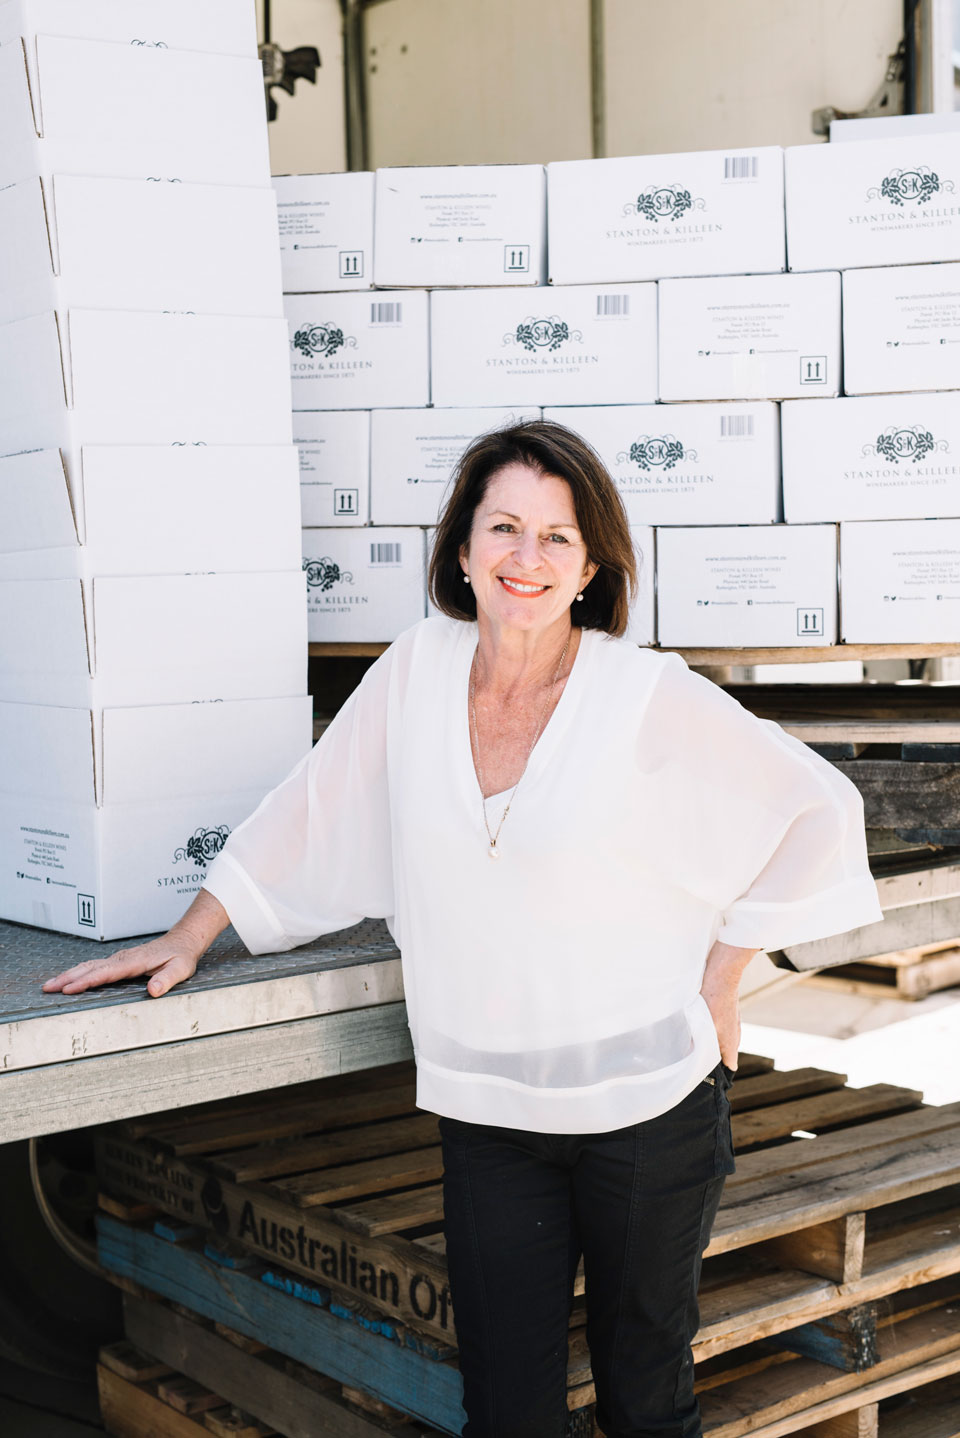 Stanton & Killeen CEO Wendy Killeen